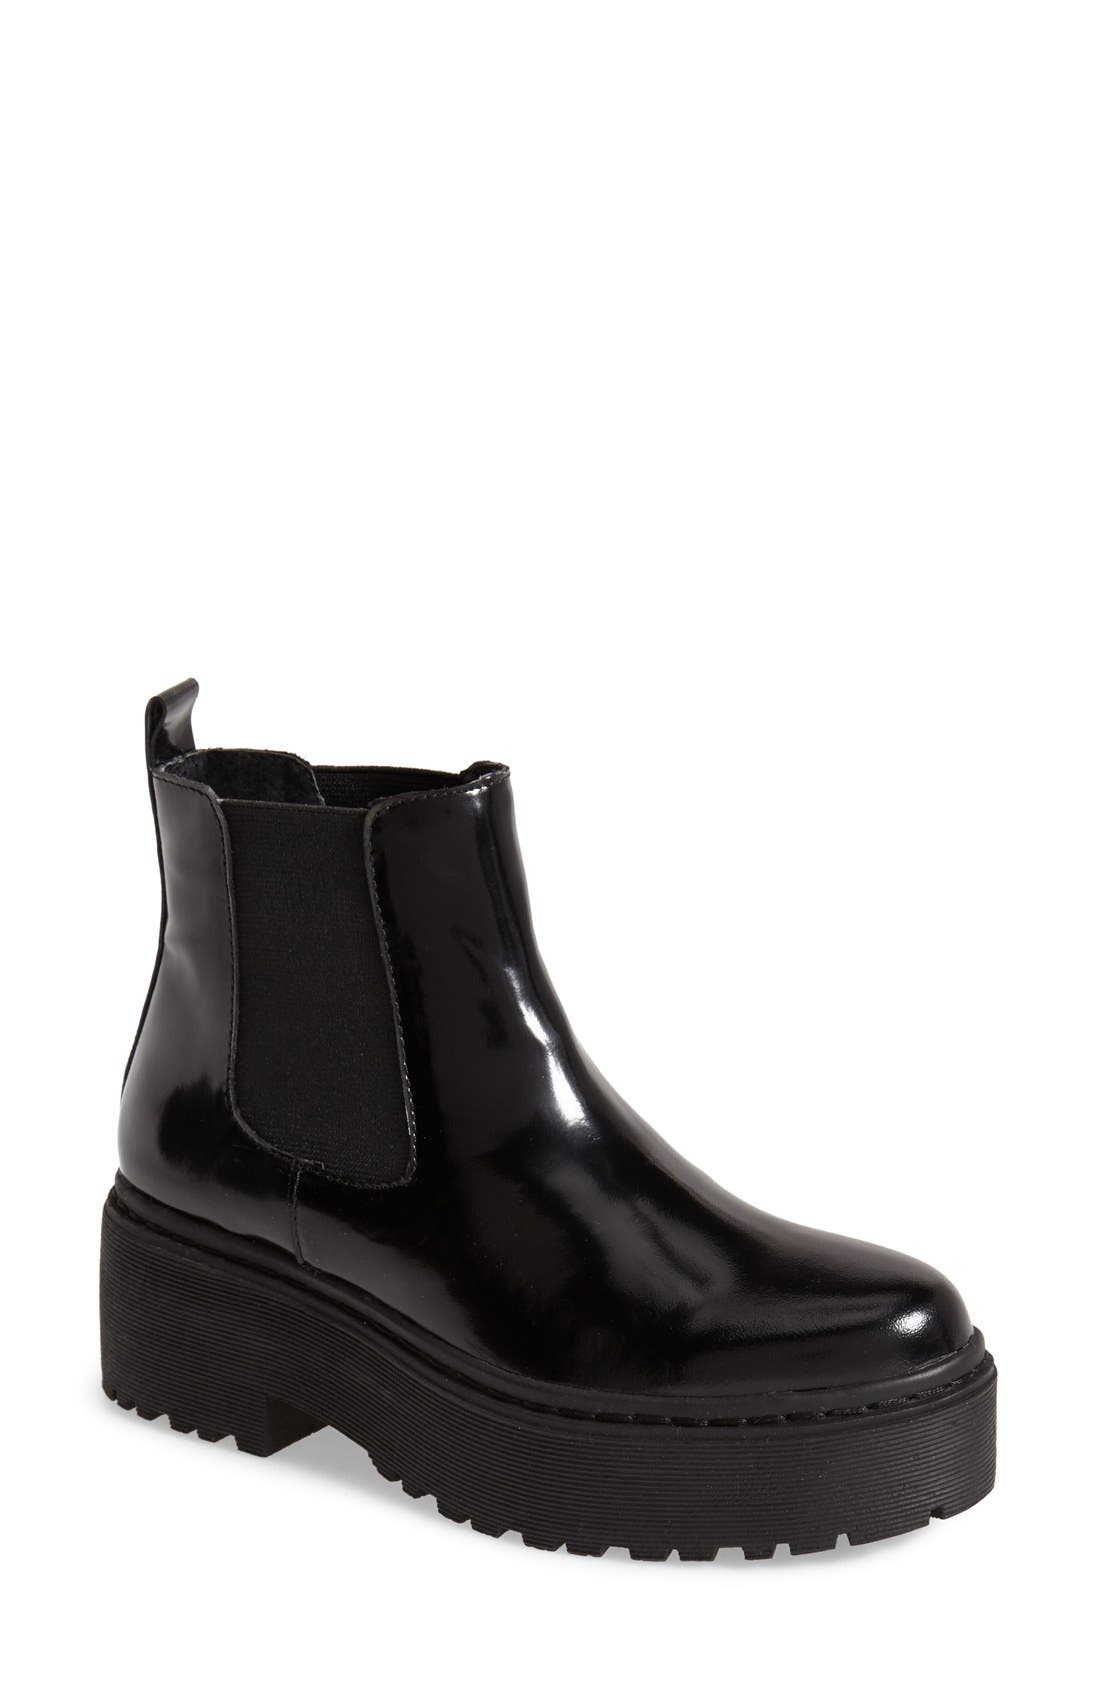 Main Image - Jeffrey Campbell 'Universal' Chelsea Boot (Women)